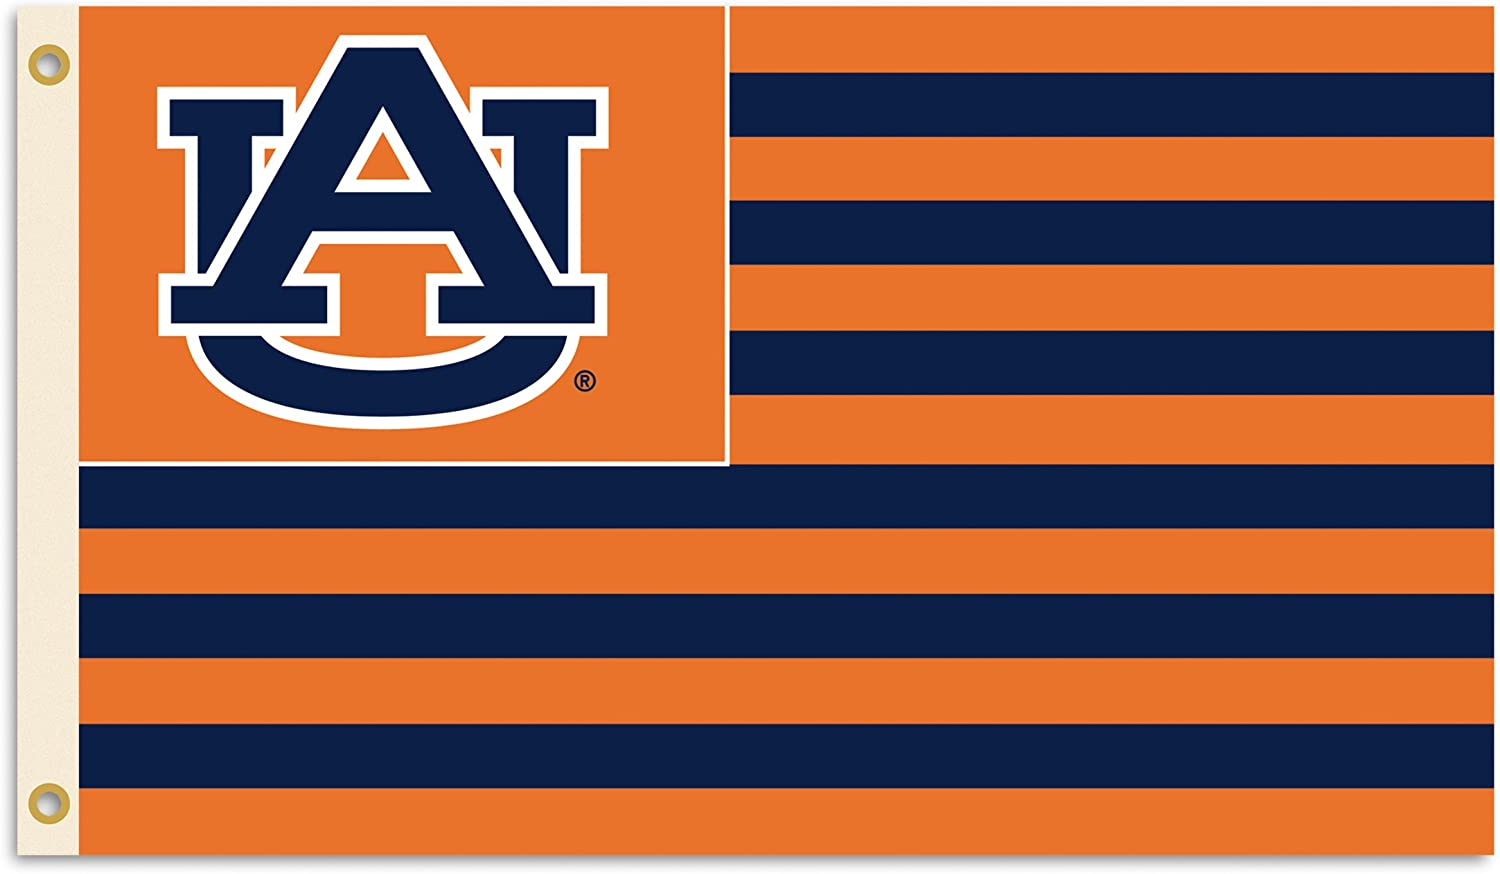 BSI NCAA 3-by-5 Foot Flag with Grommets